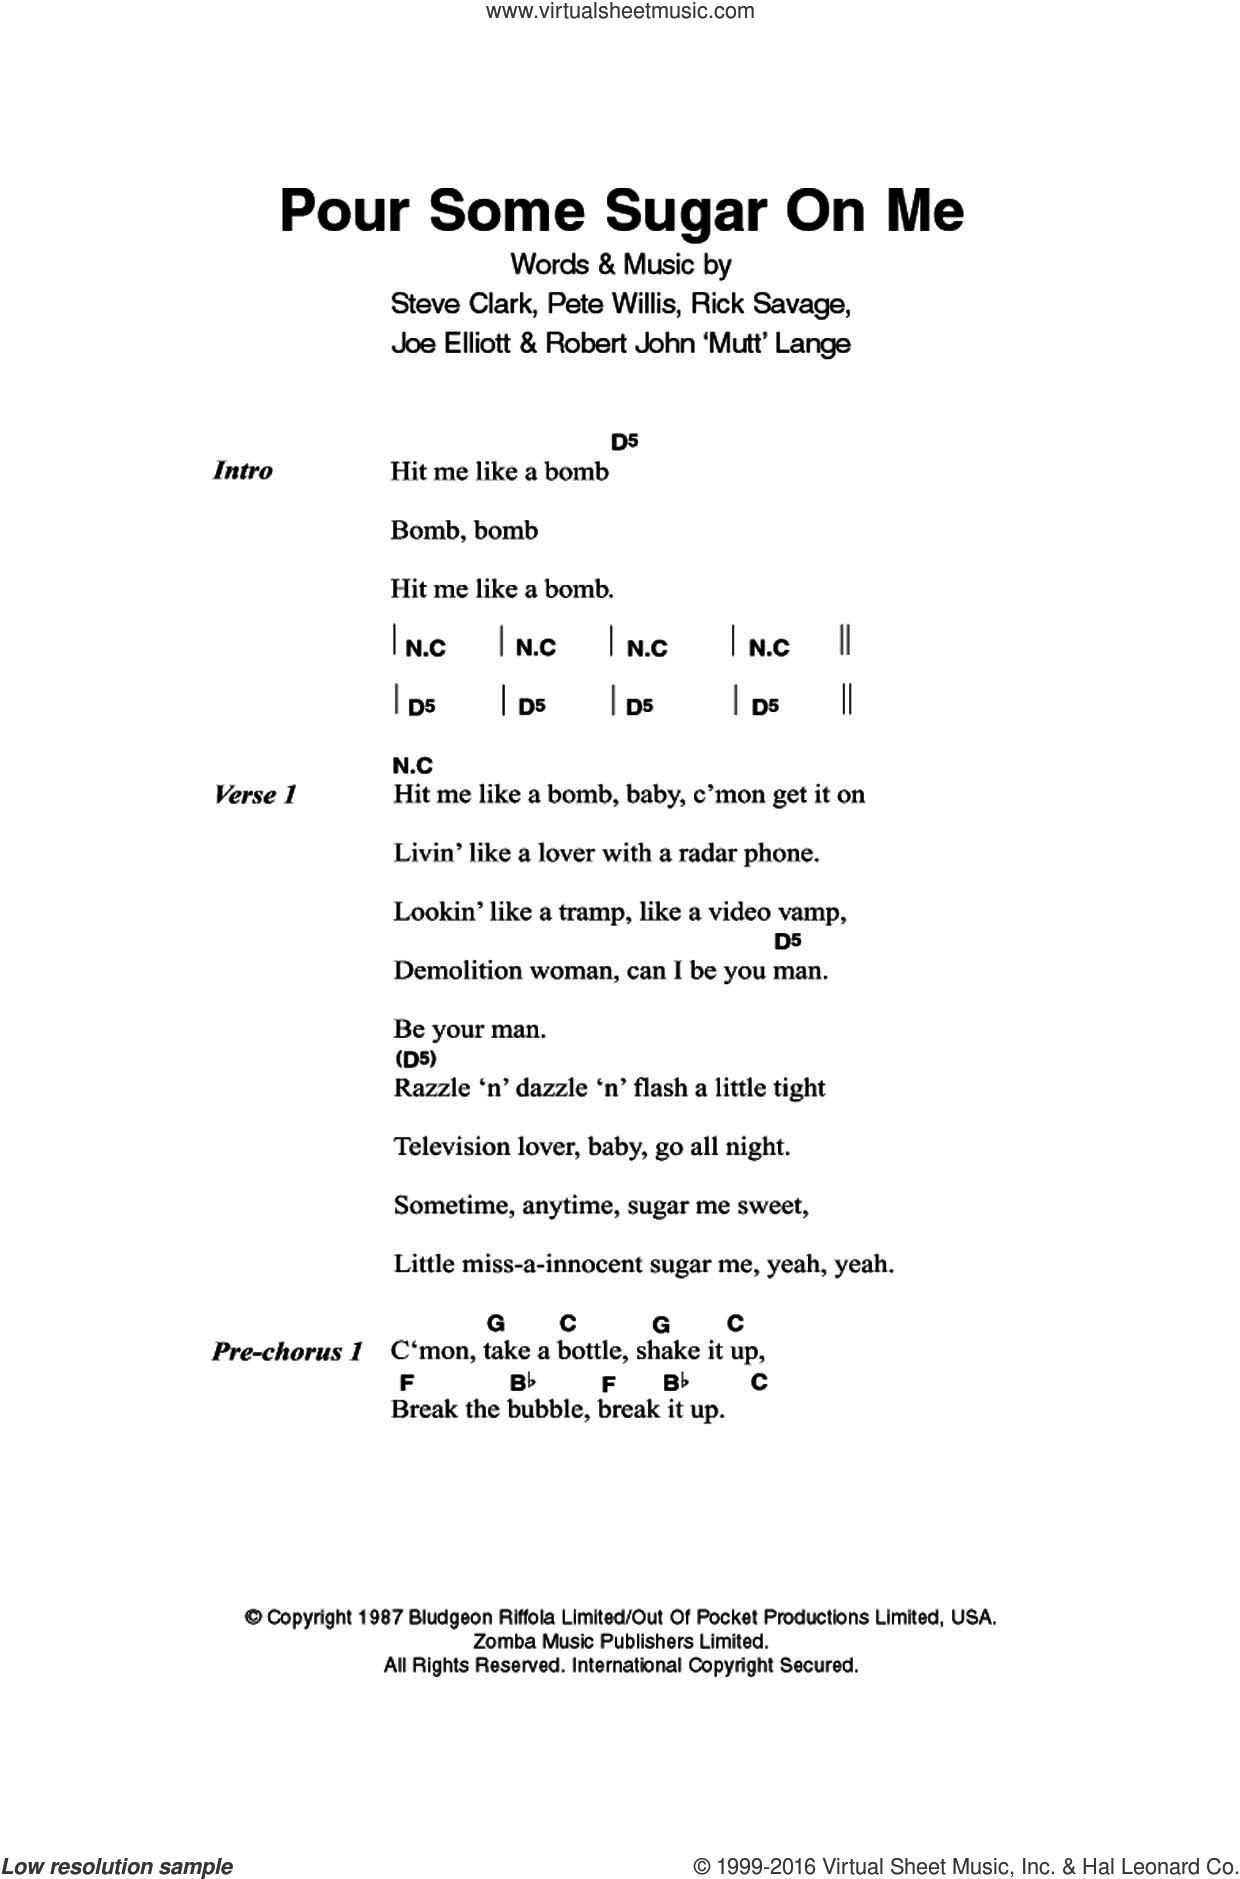 Pour Some Sugar On Me sheet music for guitar (chords) by Steve Clark, Def Leppard, Joe Elliott and Robert John Lange. Score Image Preview.